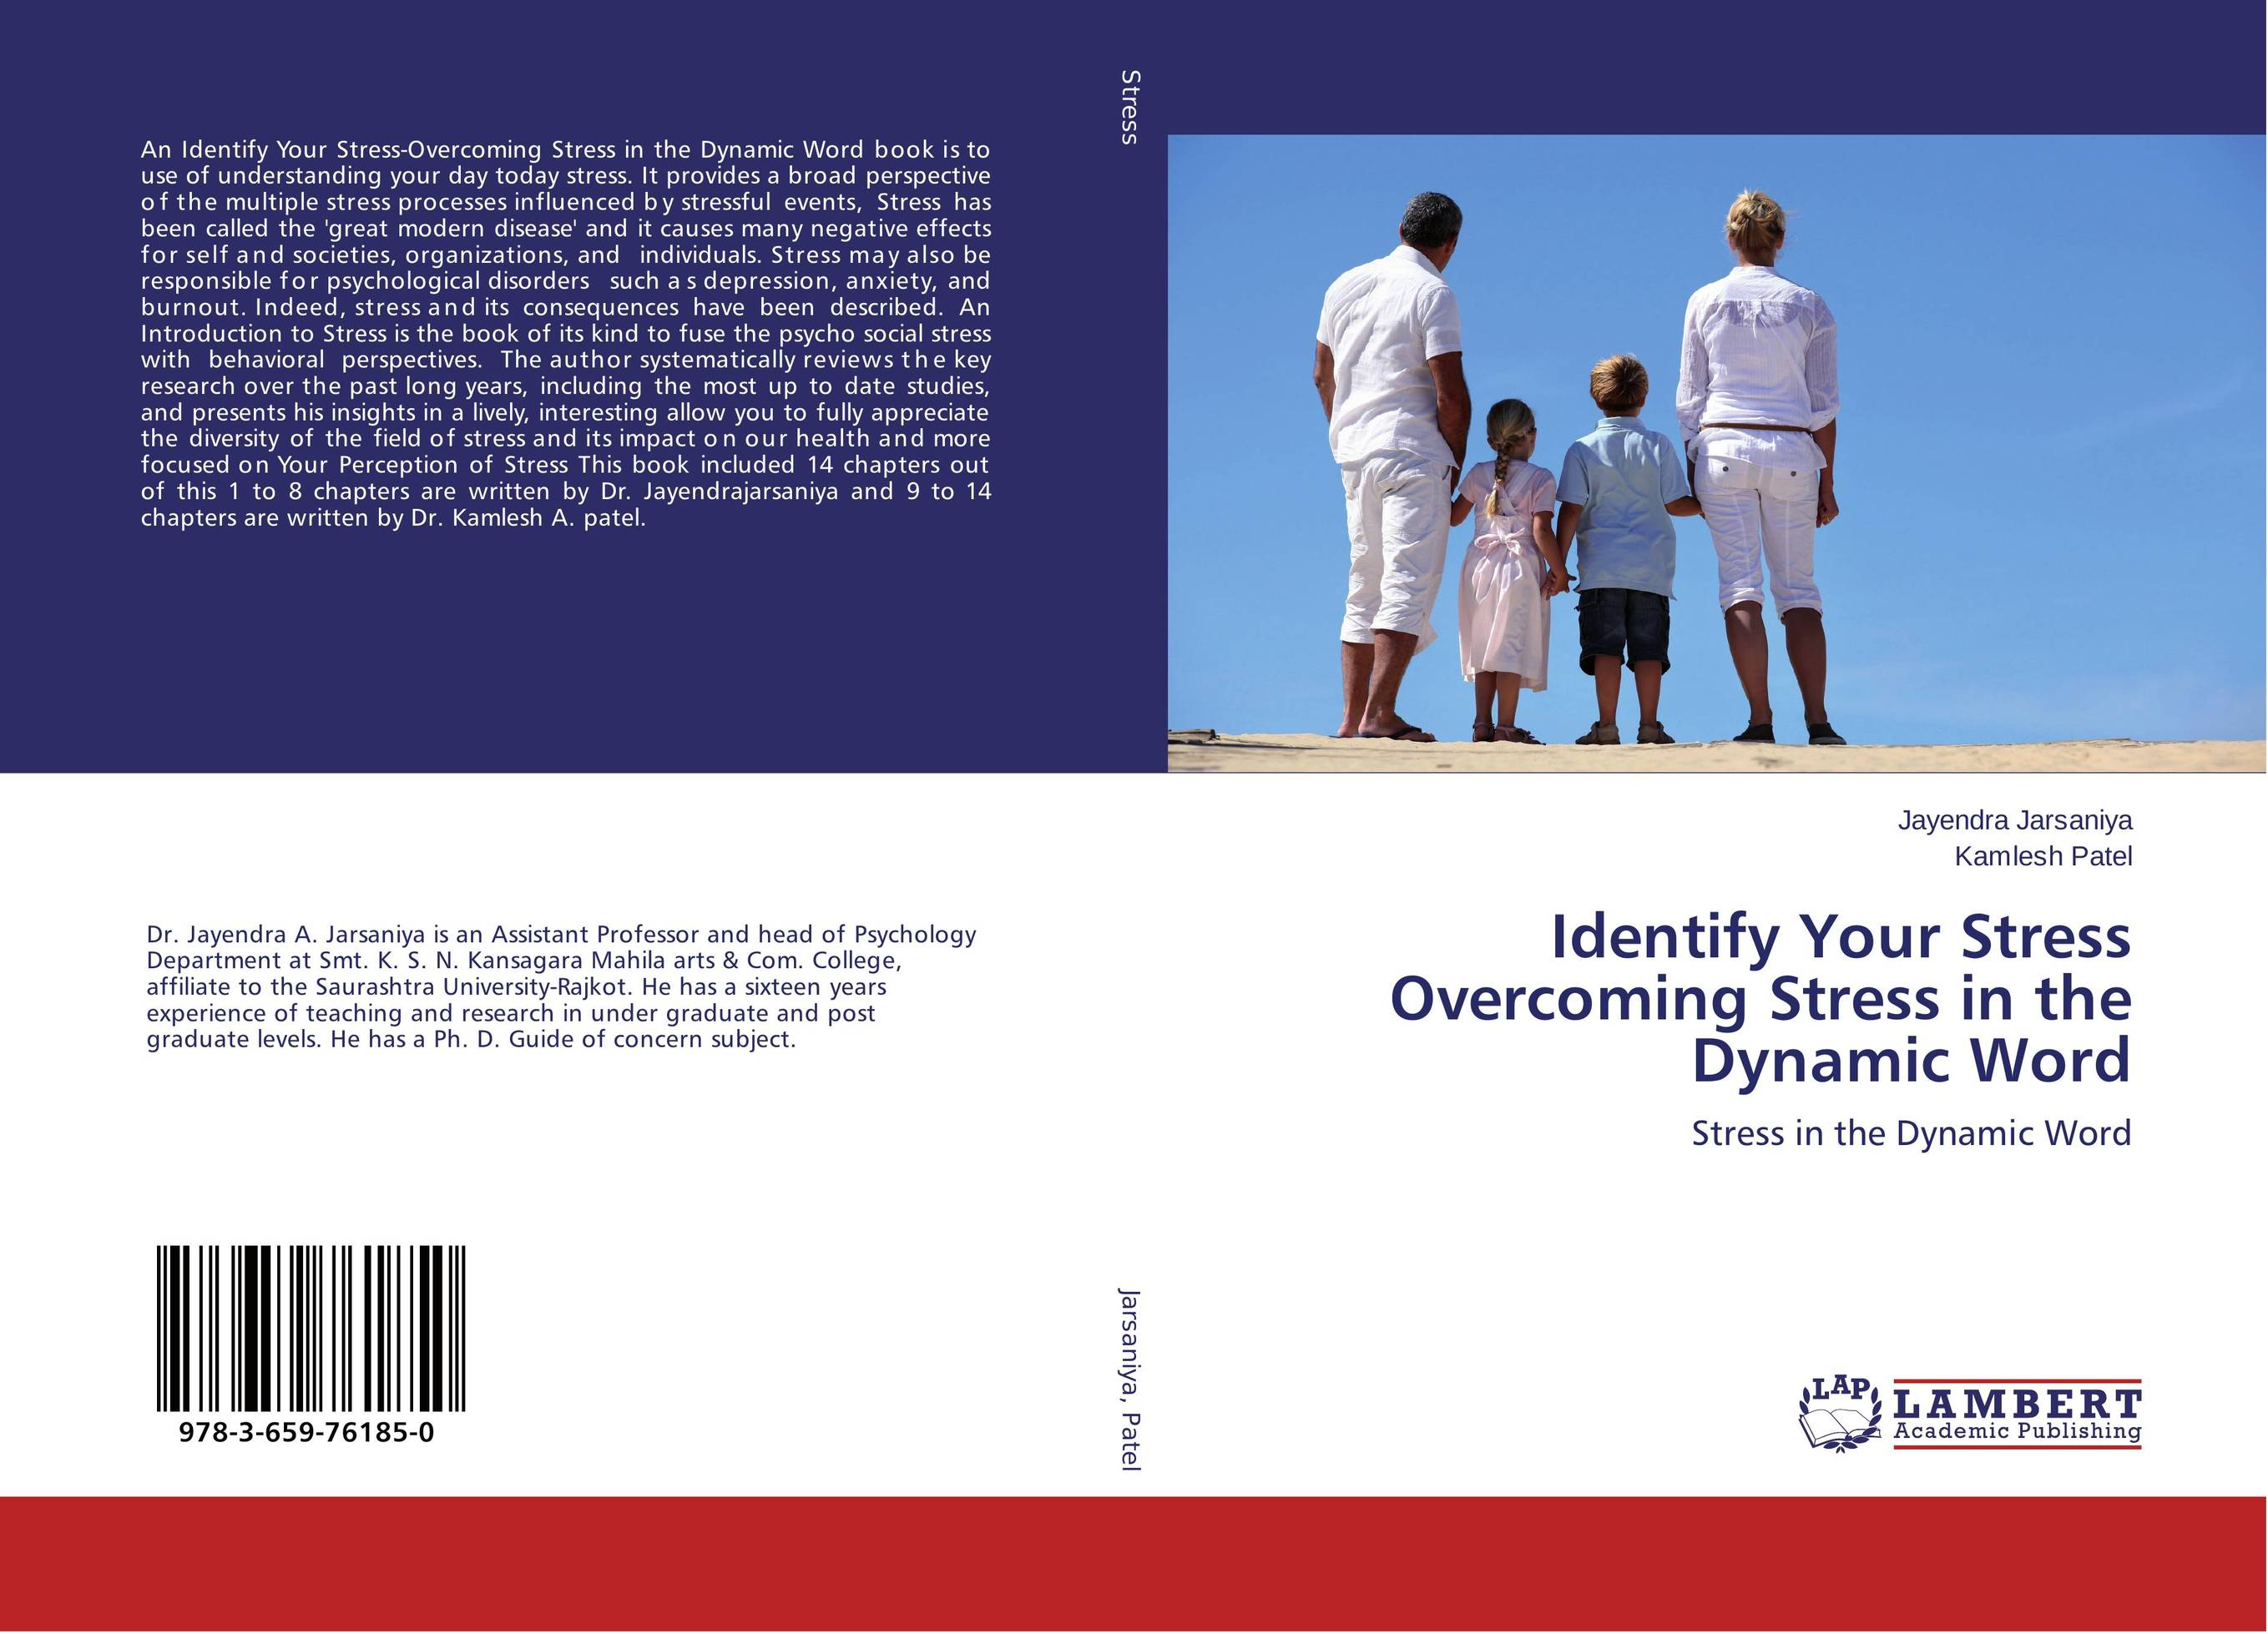 Identify Your Stress Overcoming Stress in the Dynamic Word